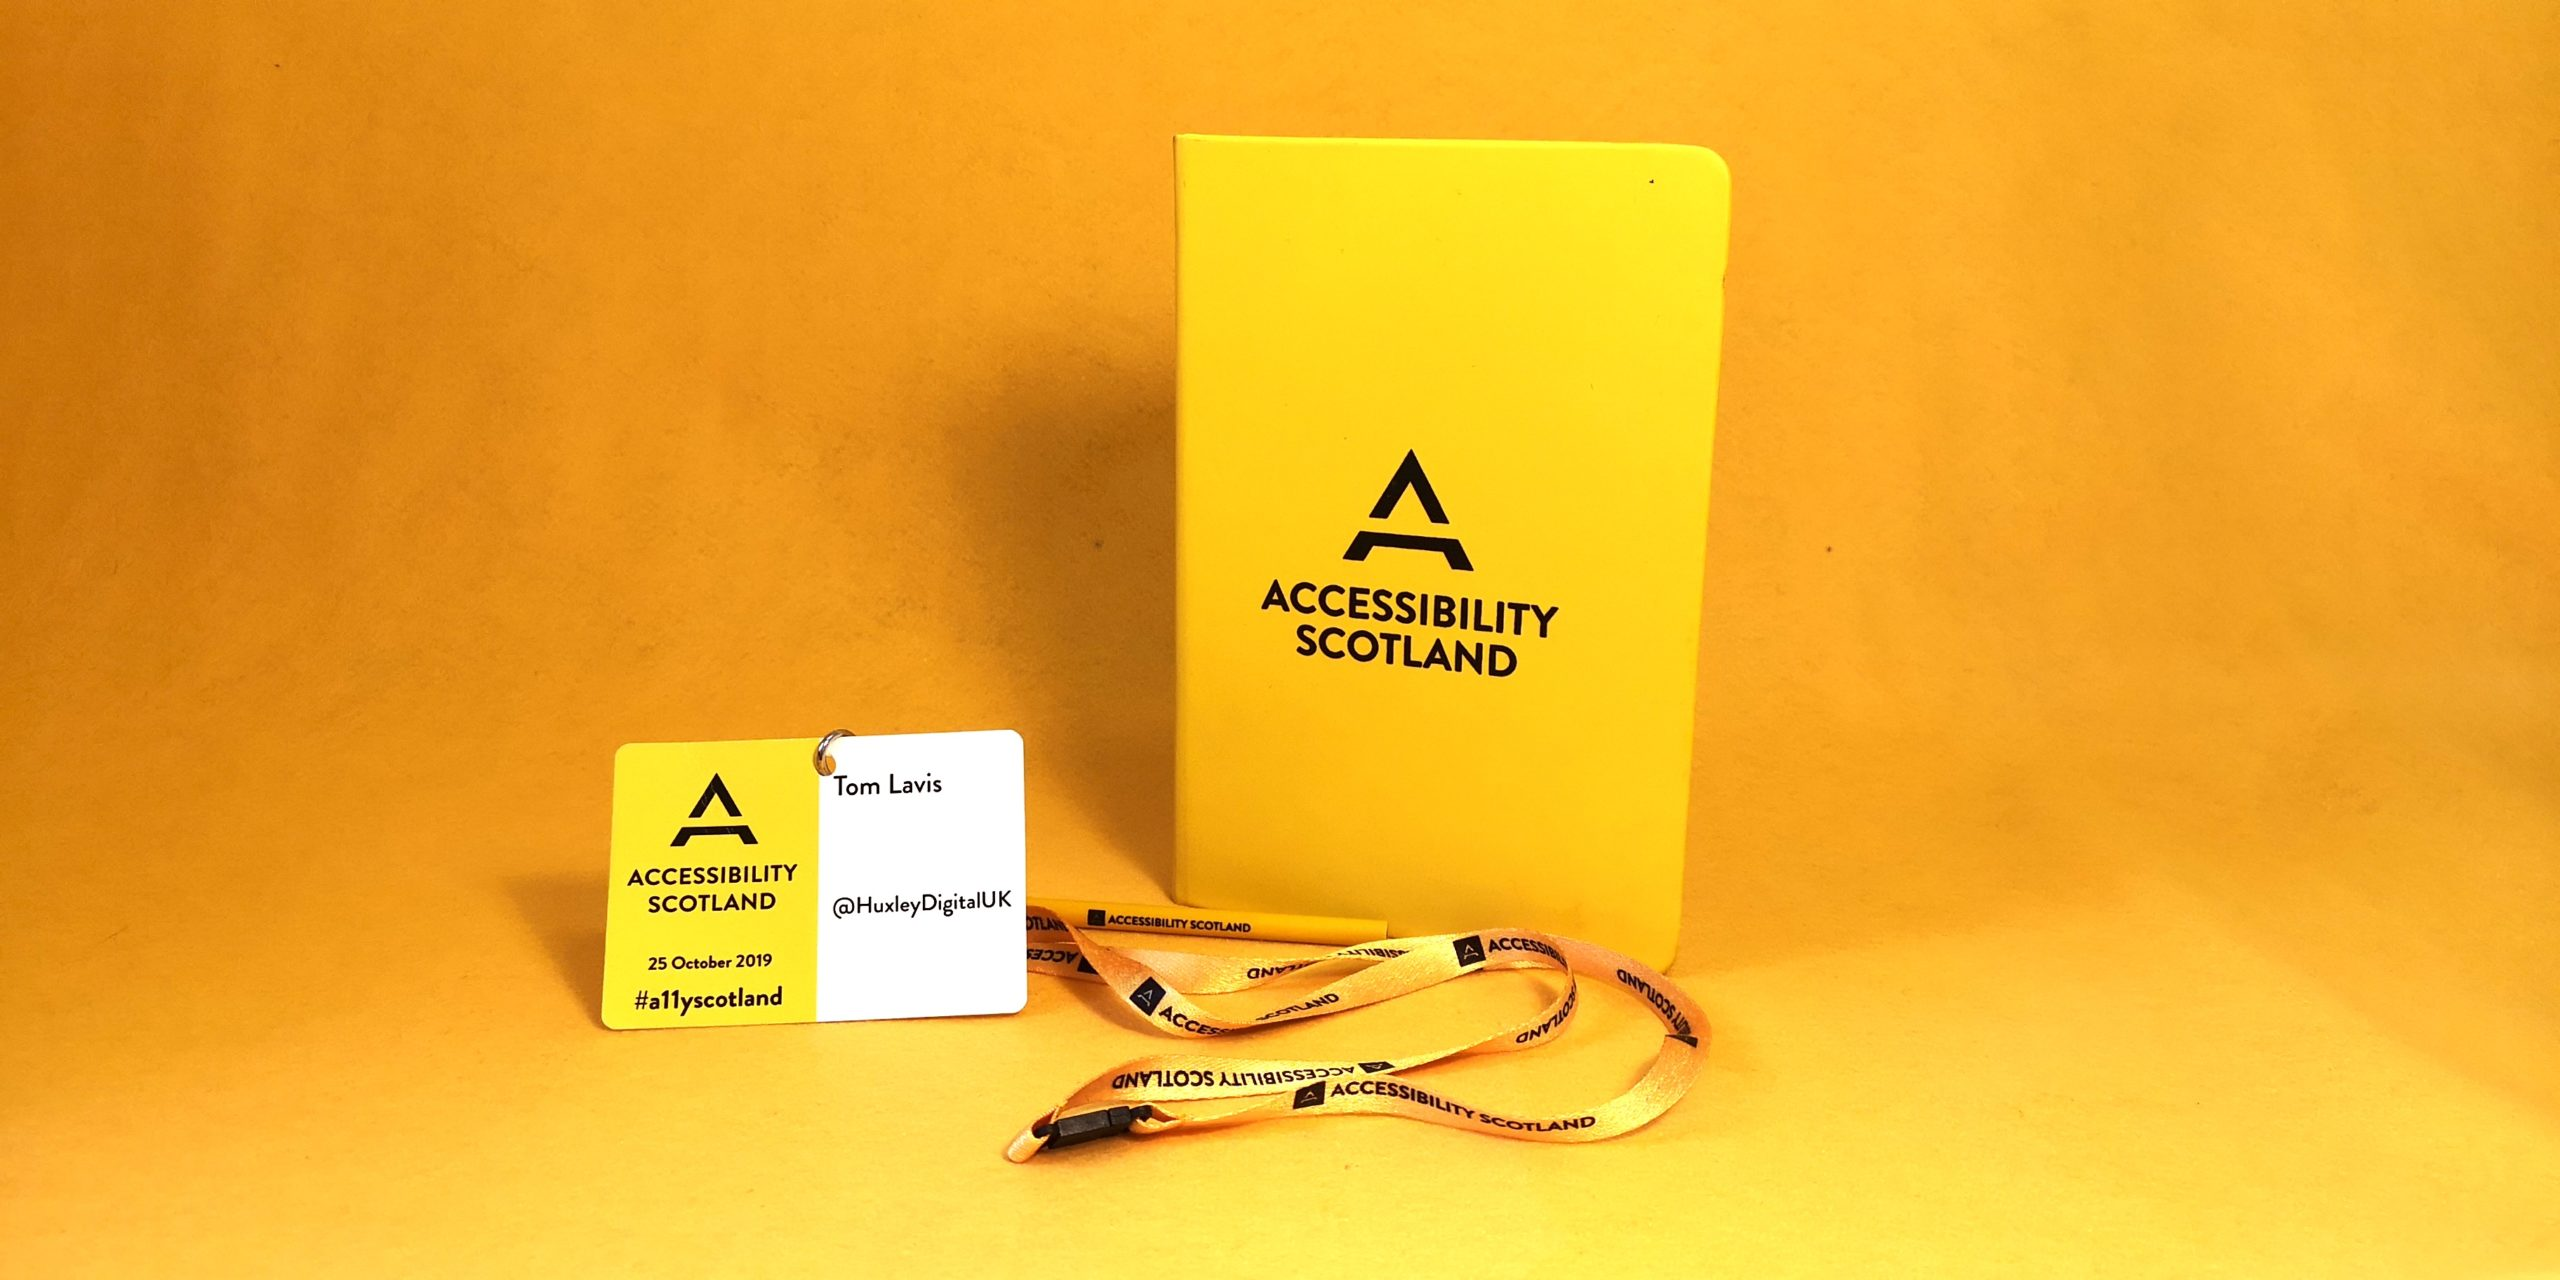 Our passes and some swag from the Accessibility Scotland conference